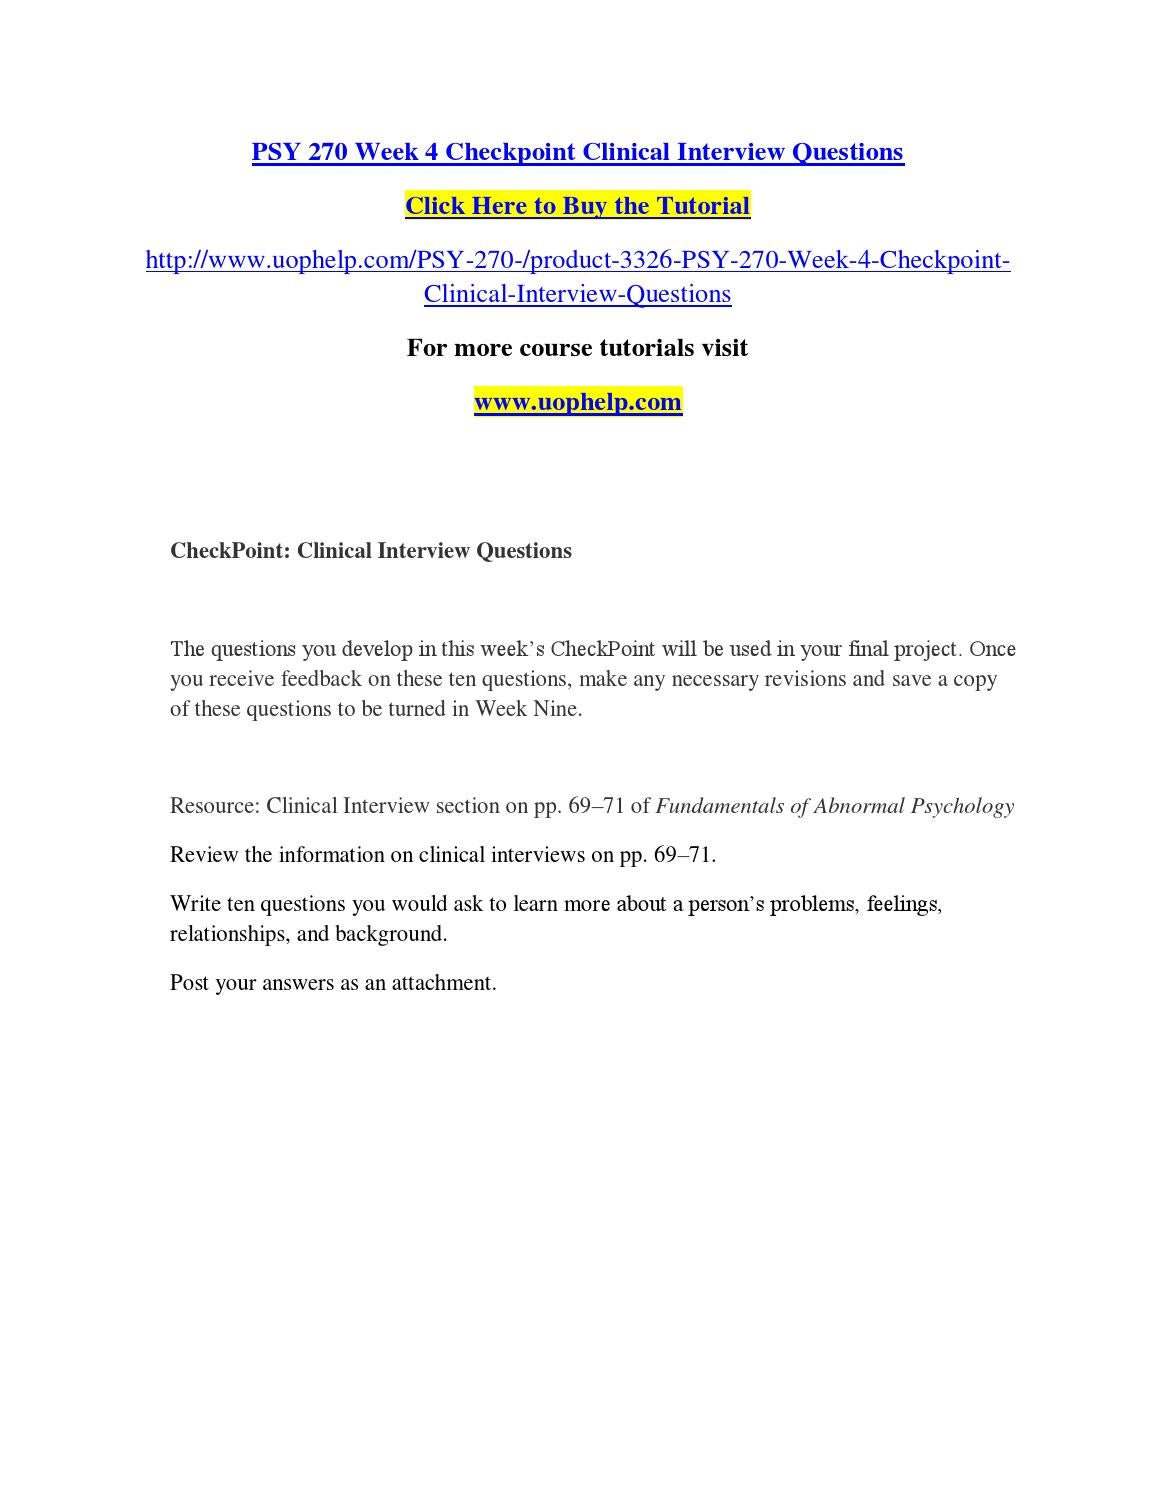 PSY 270 Clinical Interview Questions